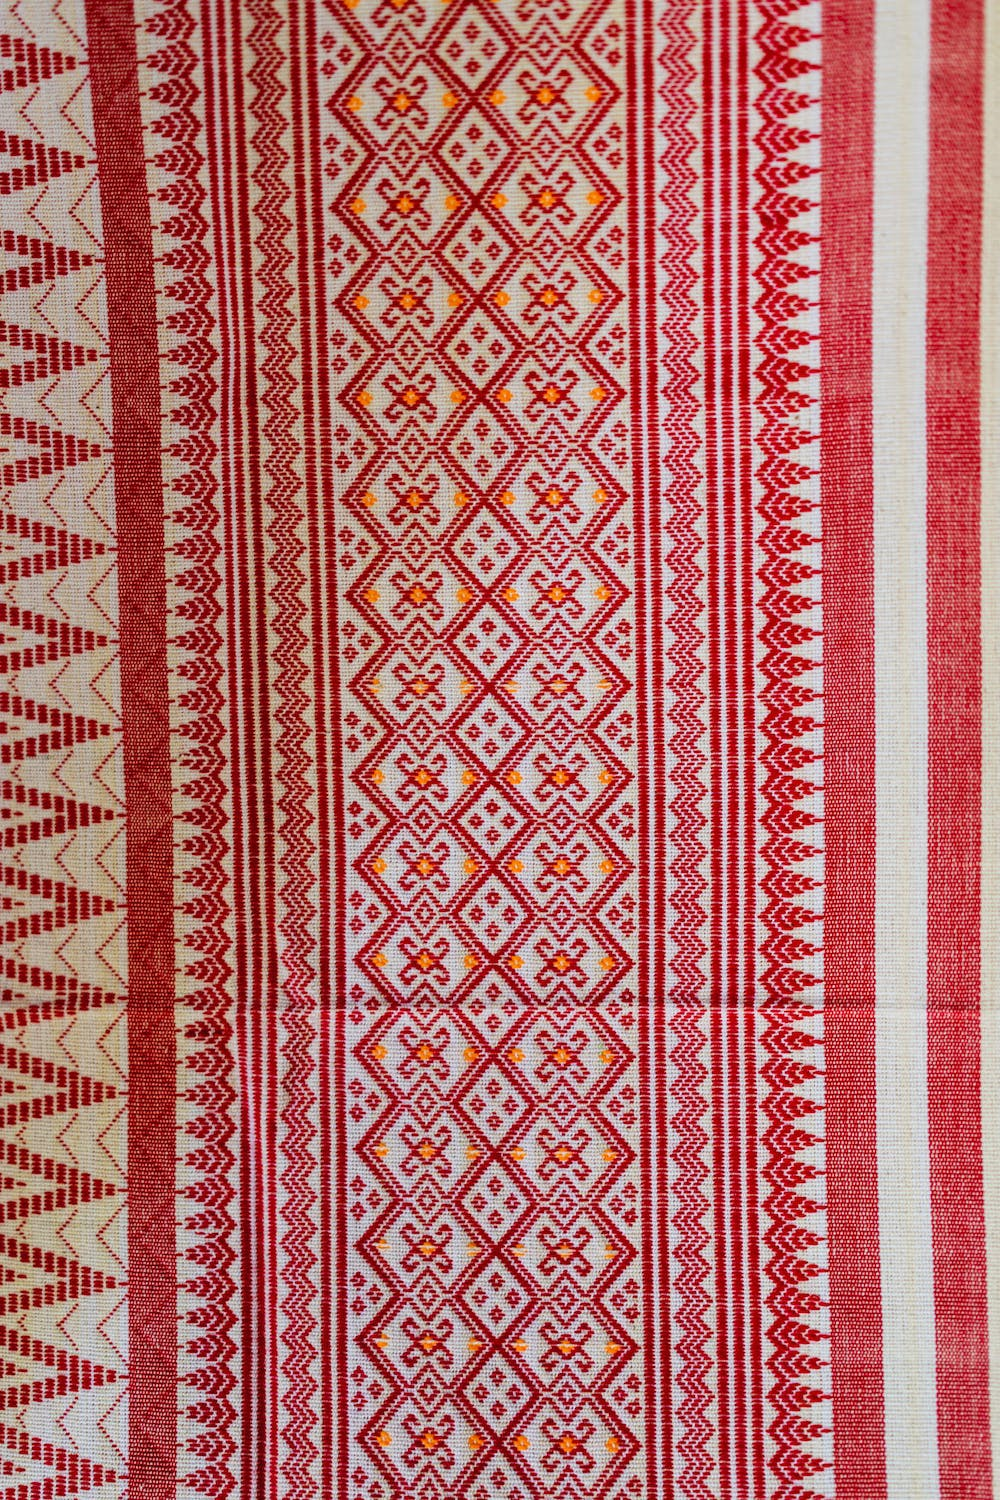 Pattern rug fabric for sale in the village market of Indein Myanmar